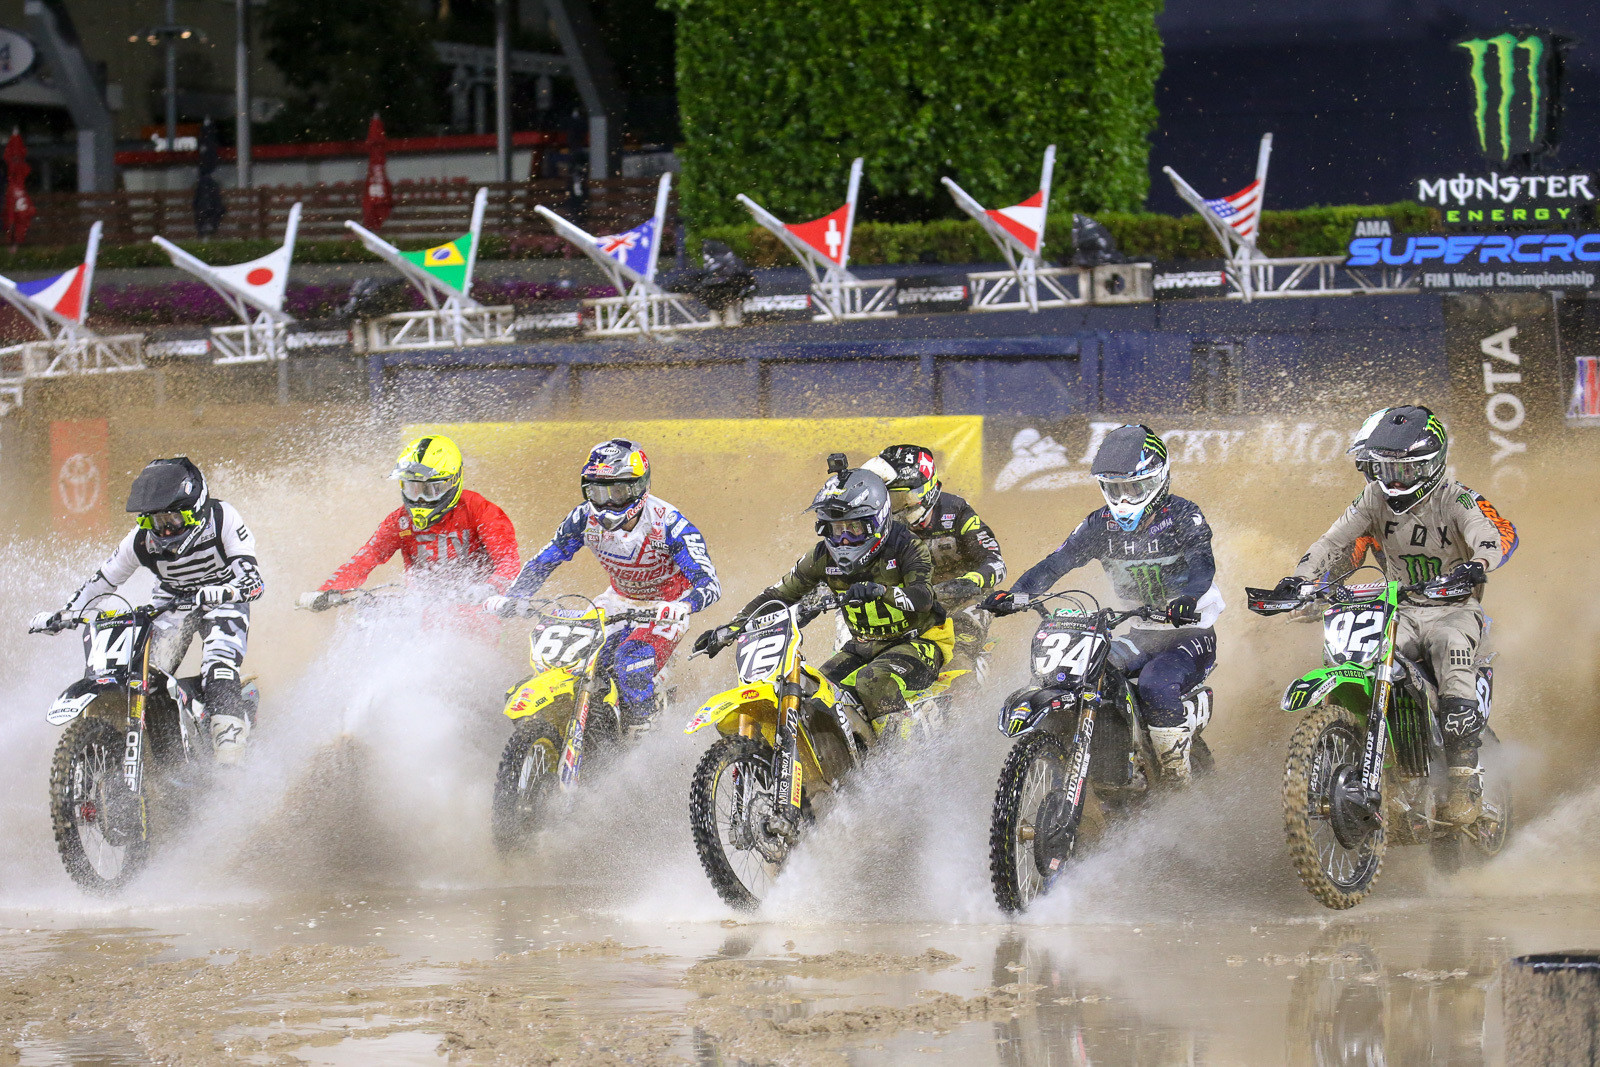 Whoa. This looks more like watercraft racing than Supercross. Every one of the heat races was a drag race to get to the standing water first. Martin Castelo and Dylan Ferrandis got their first in this heat.